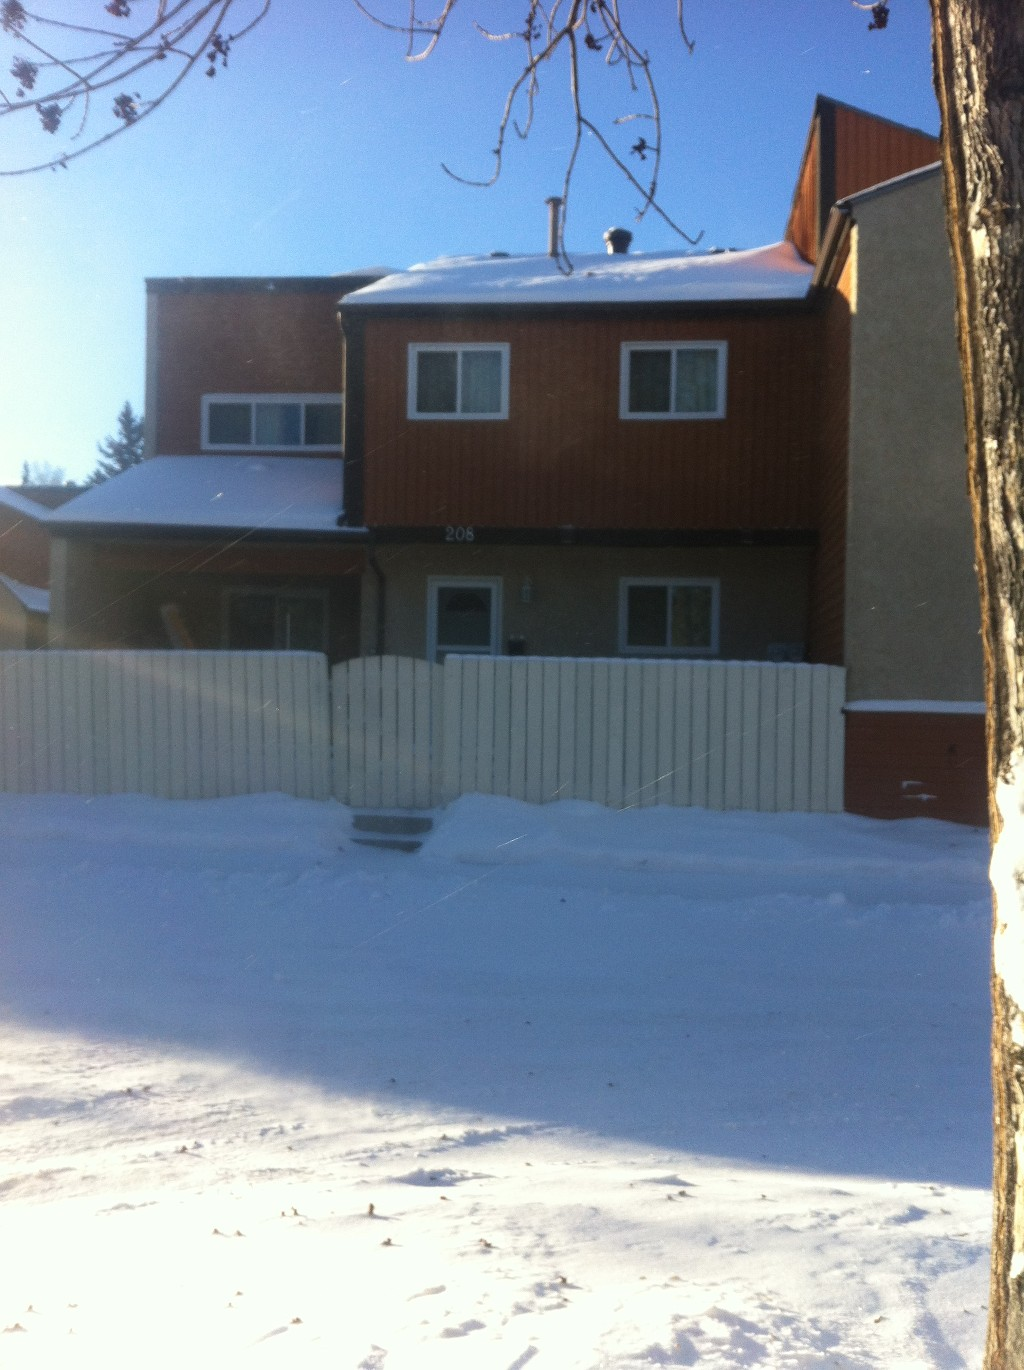 Main Photo: 208 Kaskitayo Court NW in Edmonton: Condo for sale : MLS(r) # e4047529